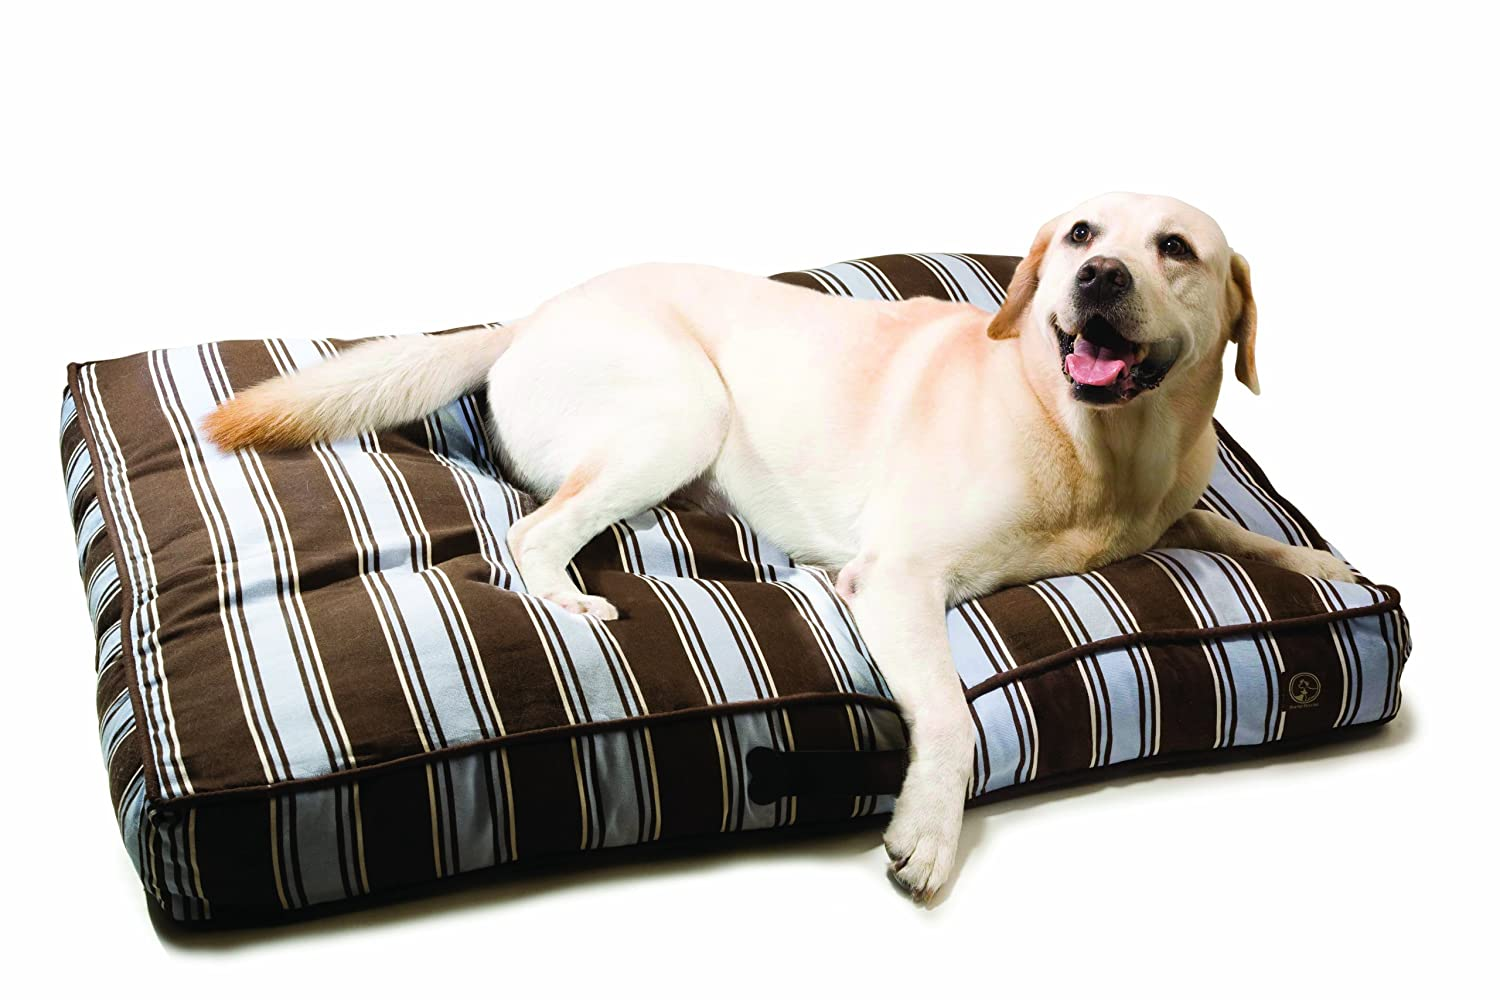 One for Pets Dog Bed Replacement Duvet Cover, Medium, bluee